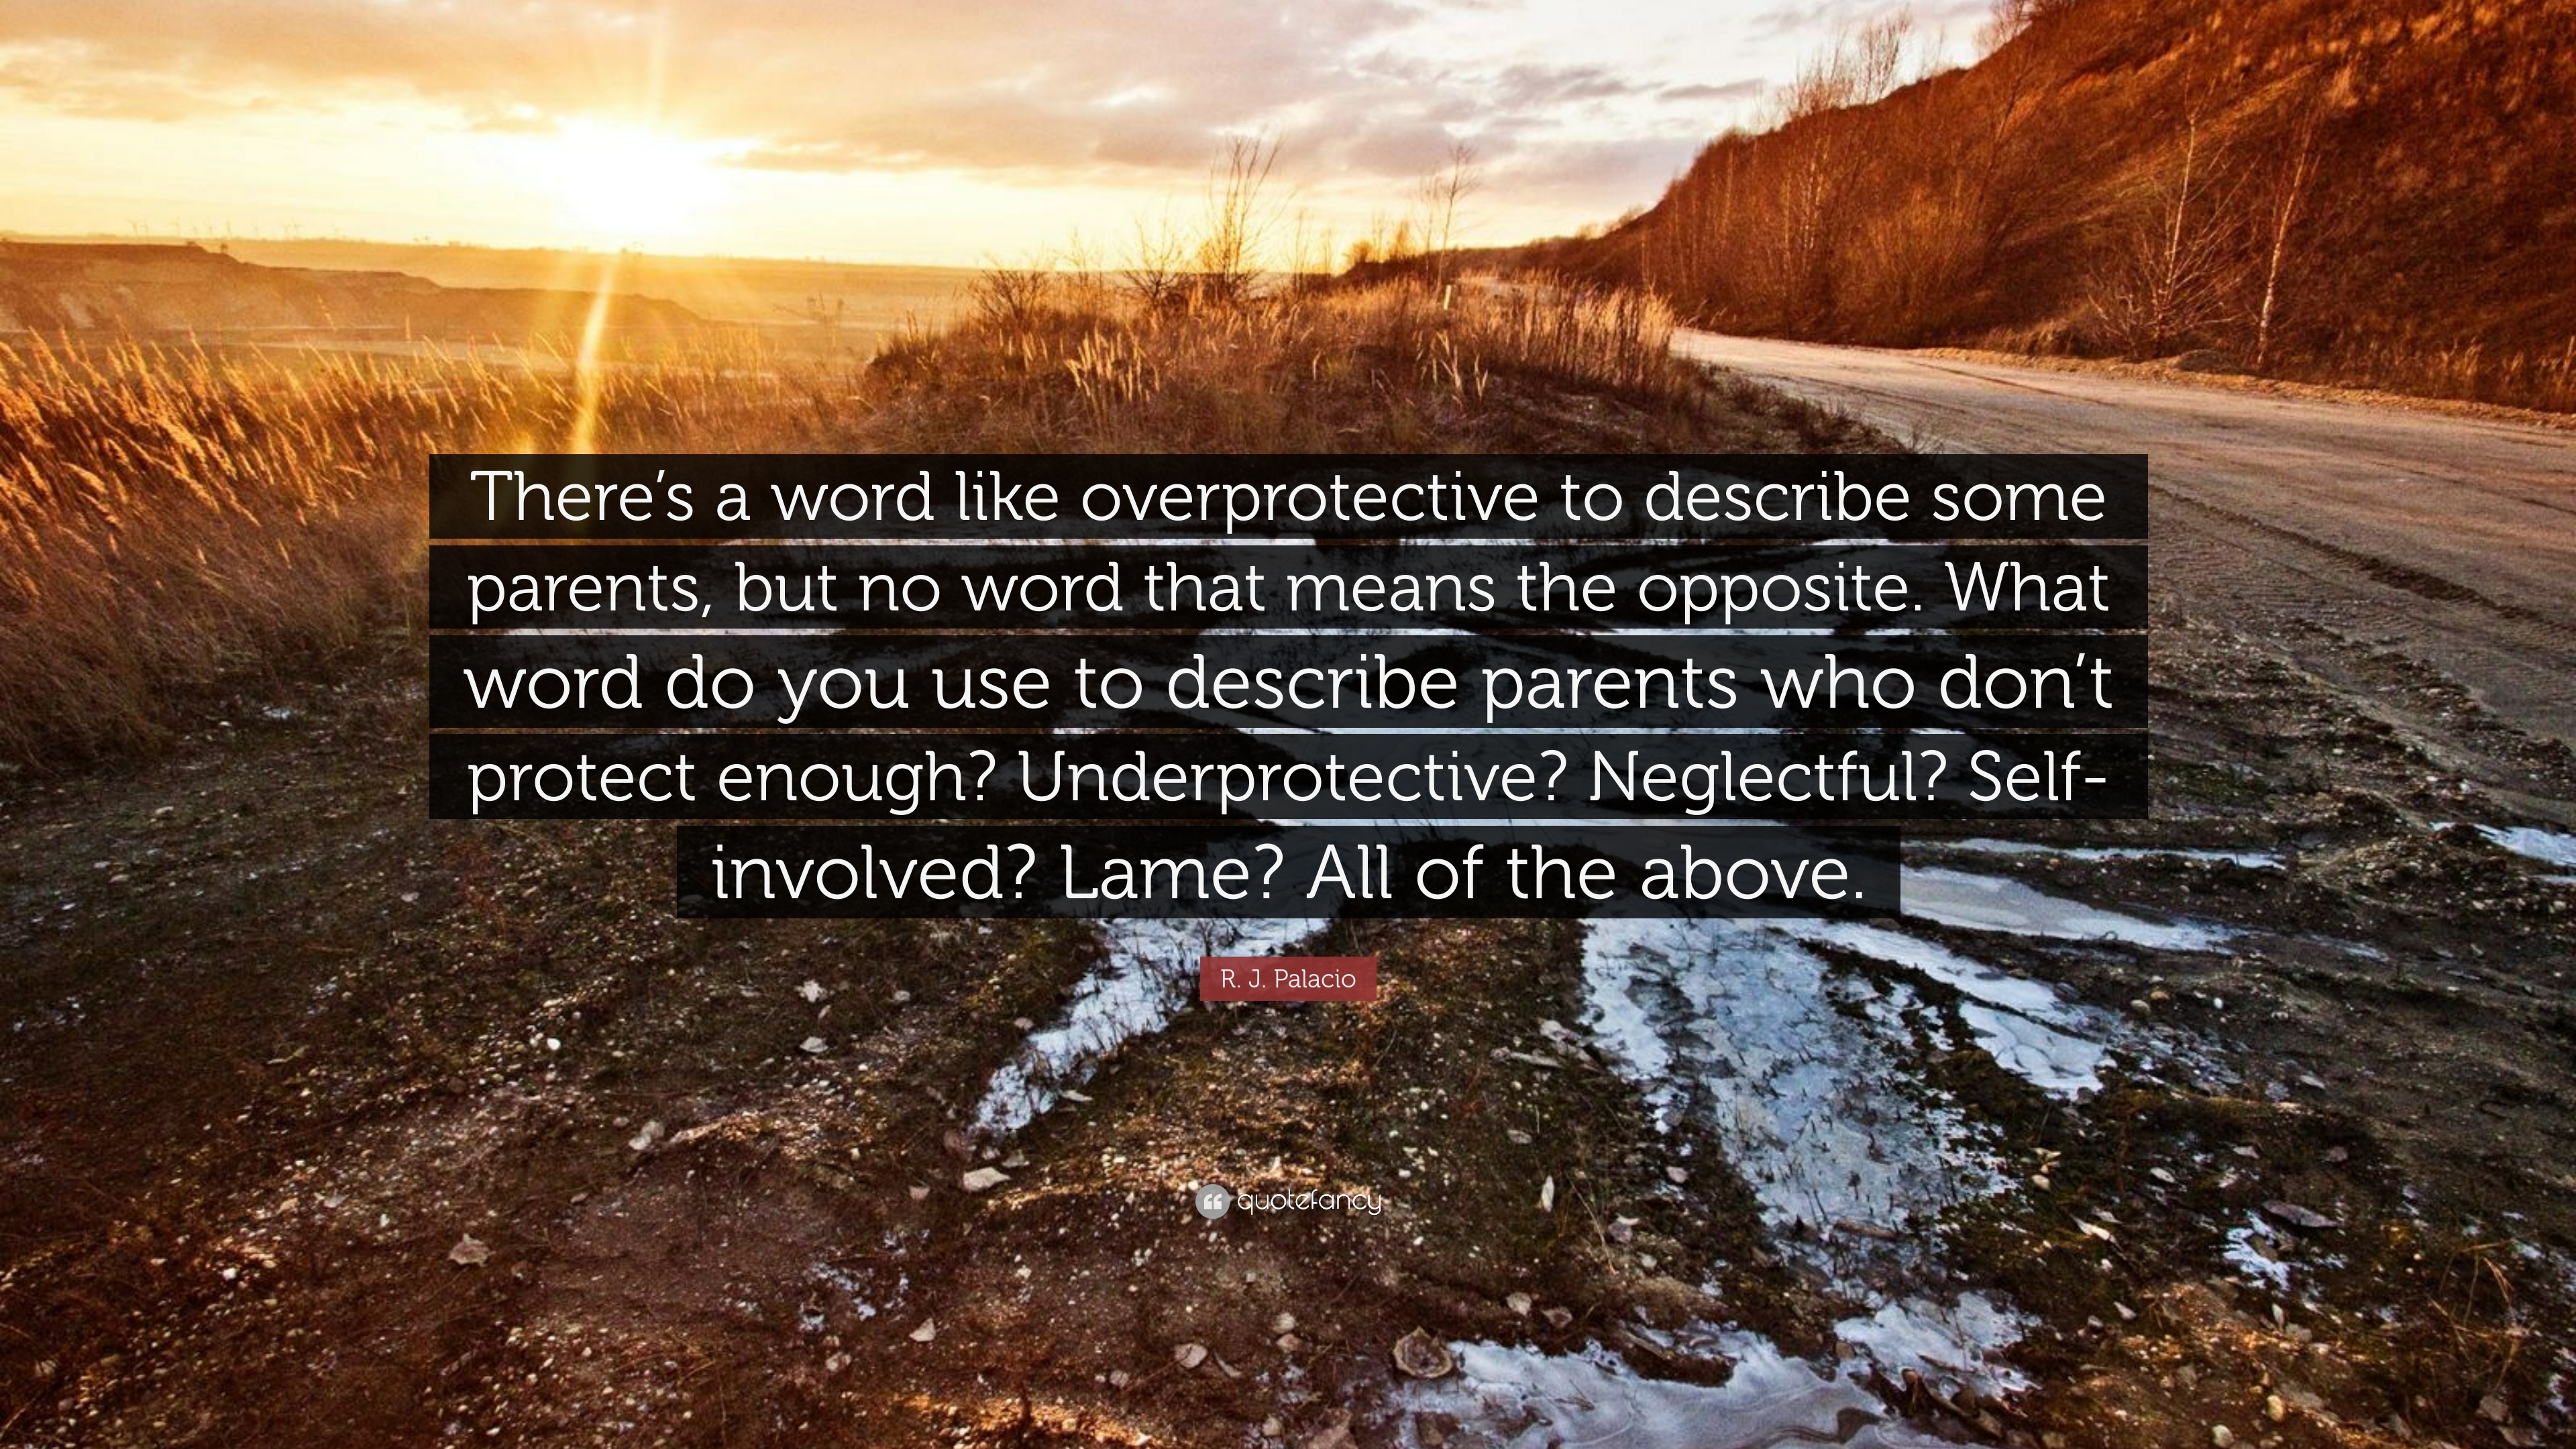 R J Palacio Quote Theres A Word Like Overprotective To Describe Some Parents But